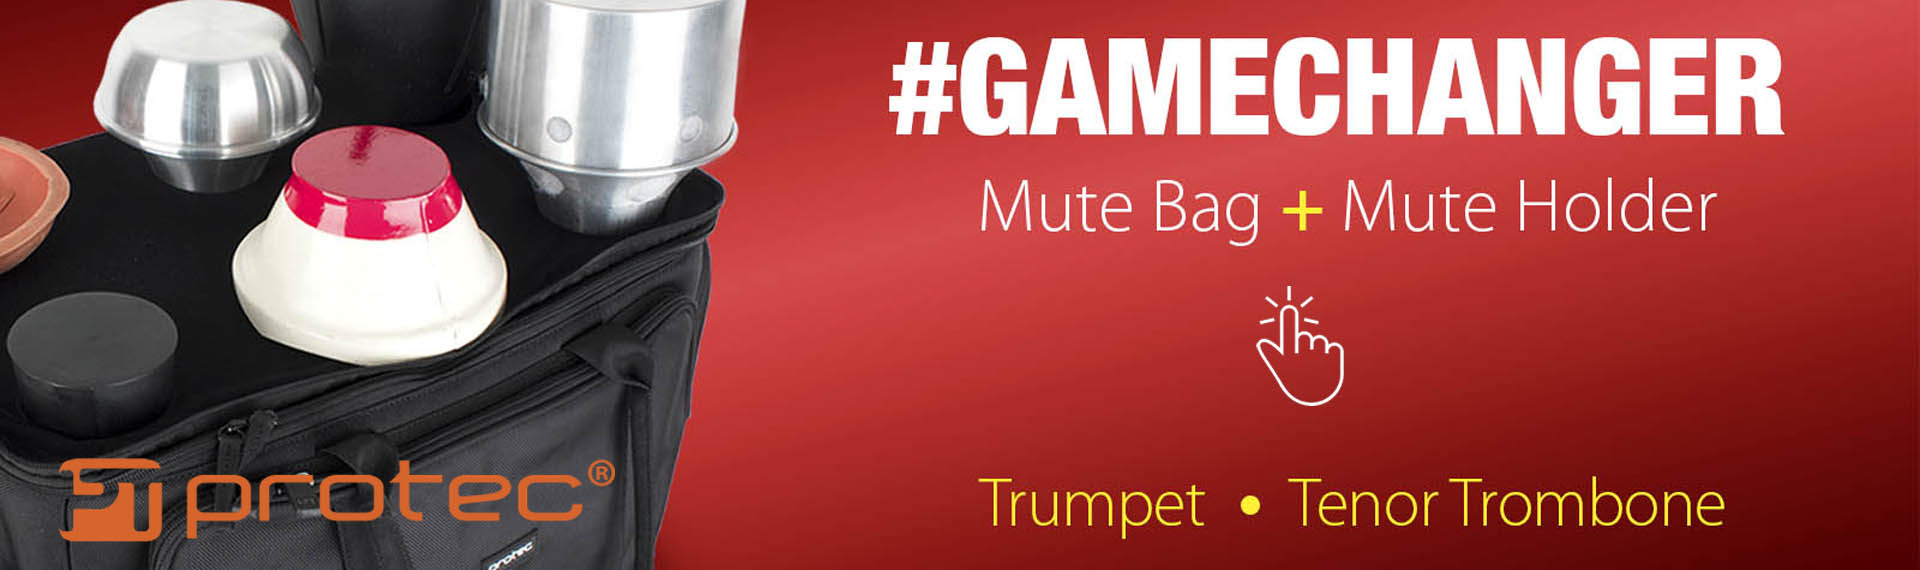 Mute Bag and Holder